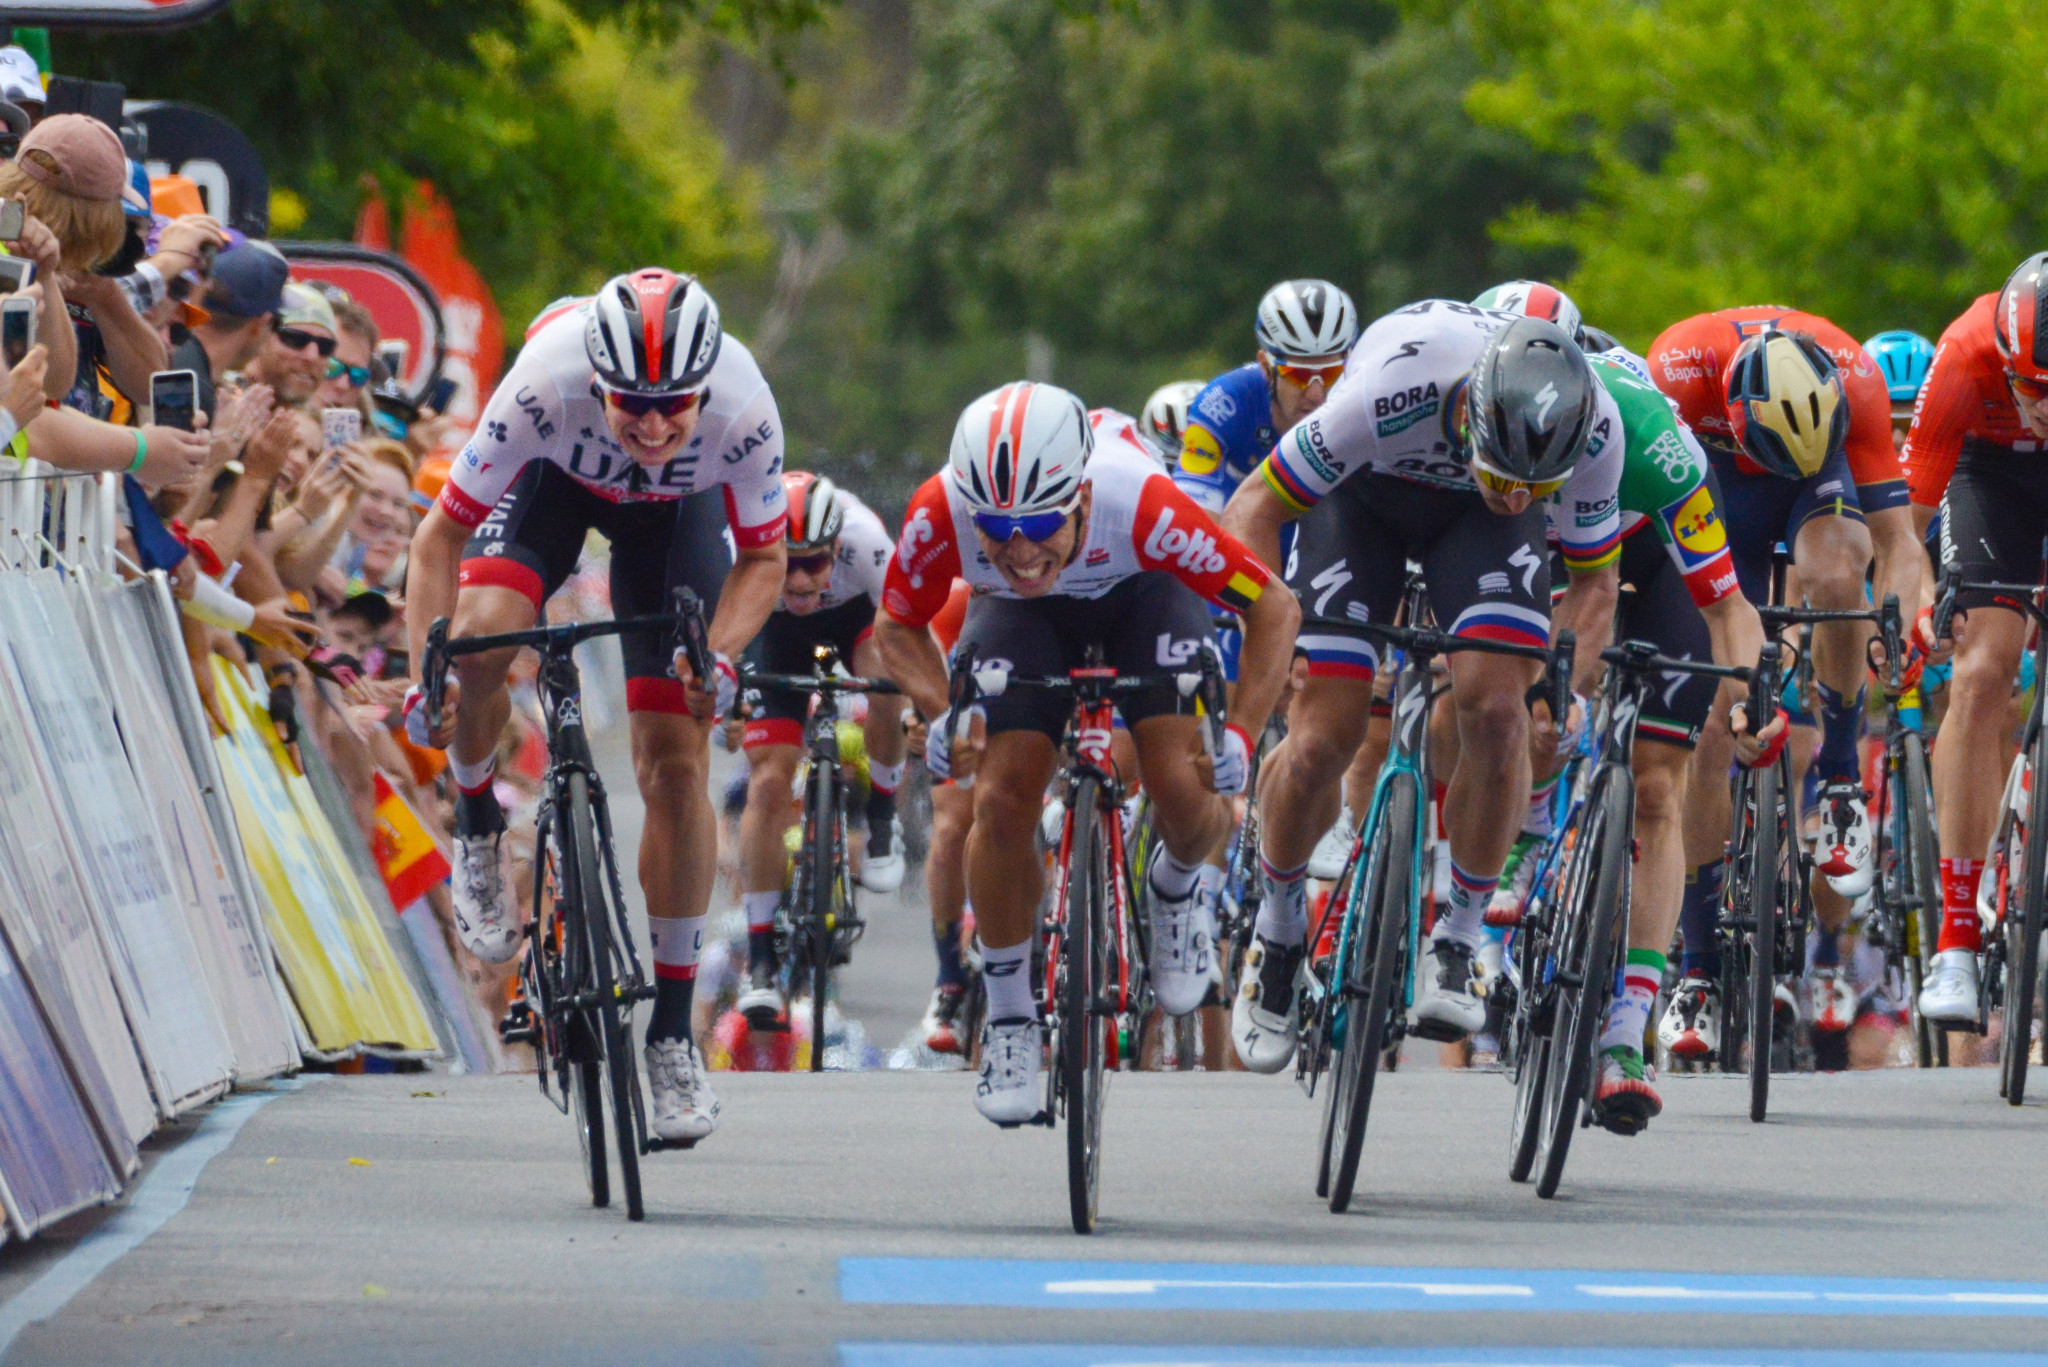 Caleb Ewan, centre, was dropped to the back of the front group following the alleged infringement ©Getty Images